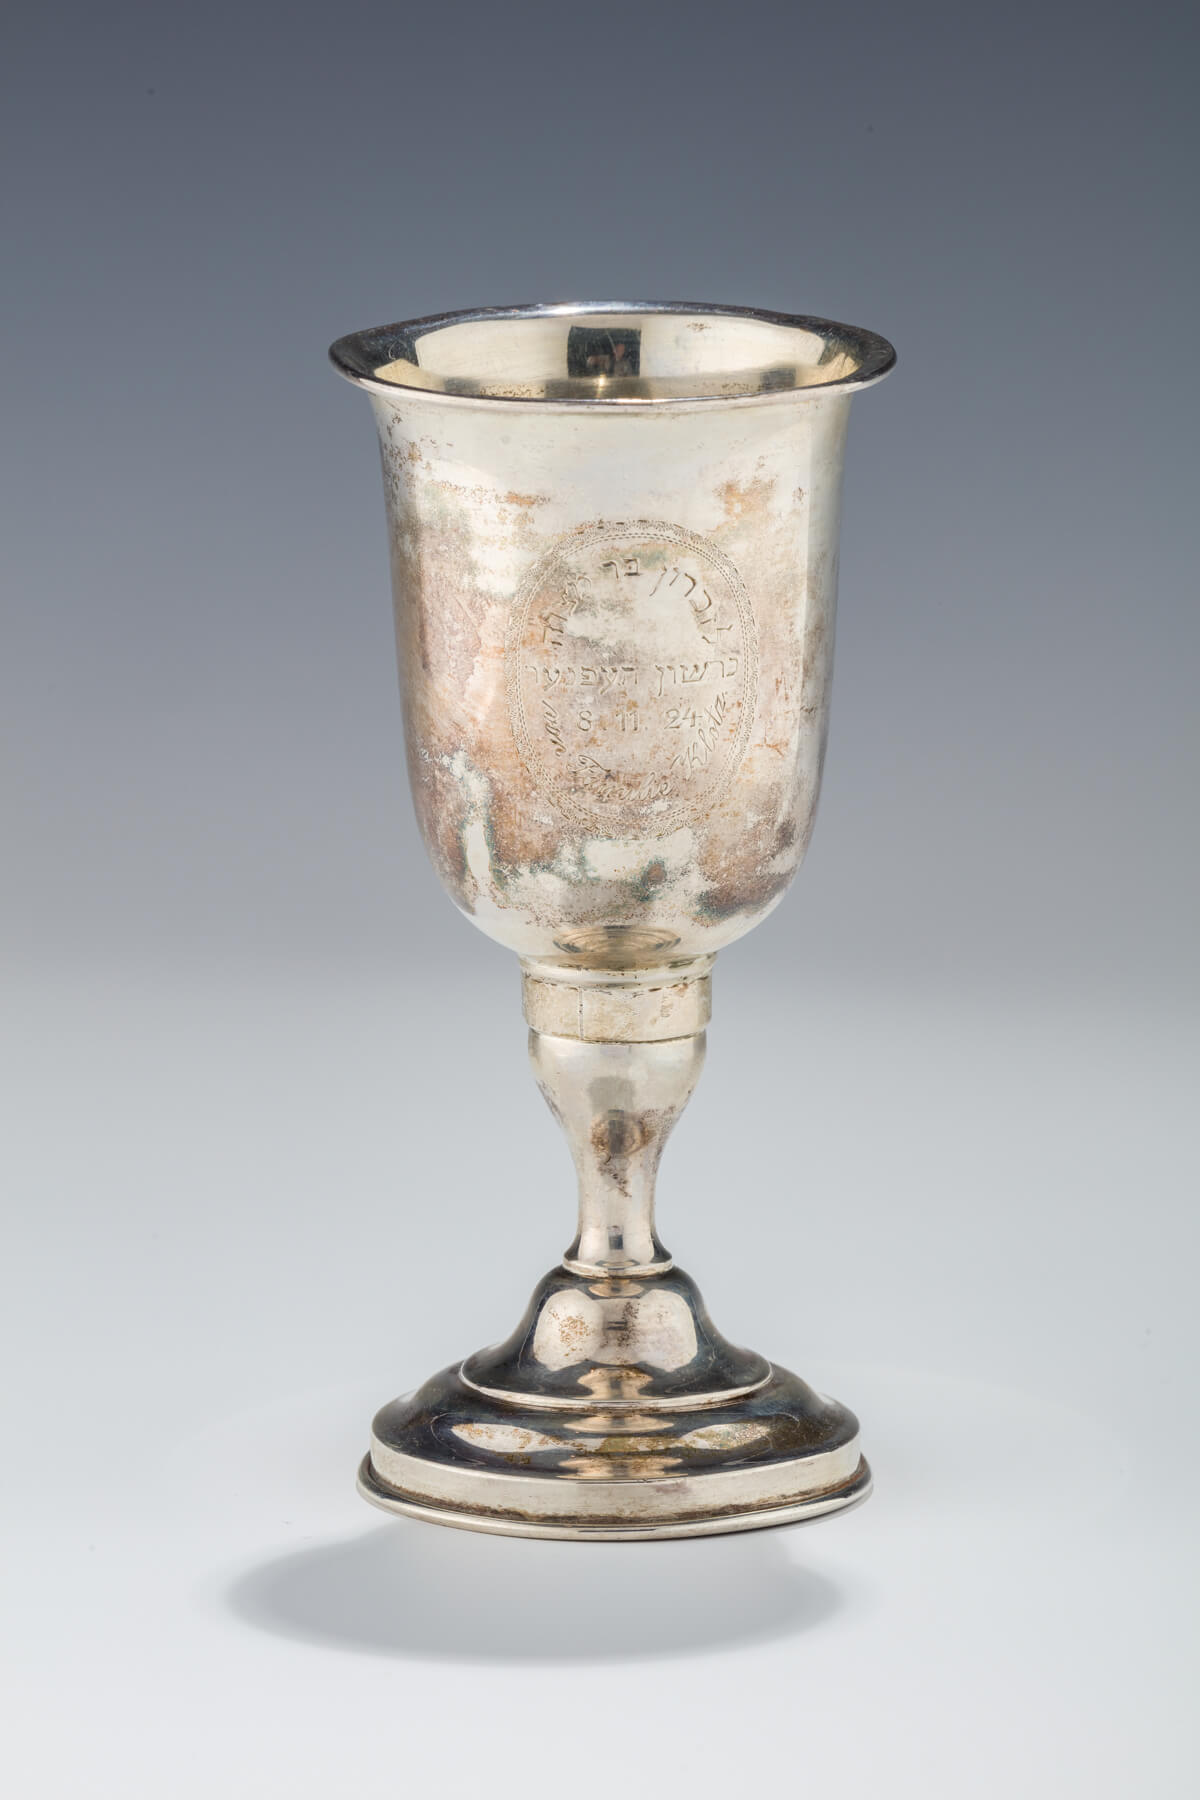 003. A Sterling Silver Kiddush Goblet